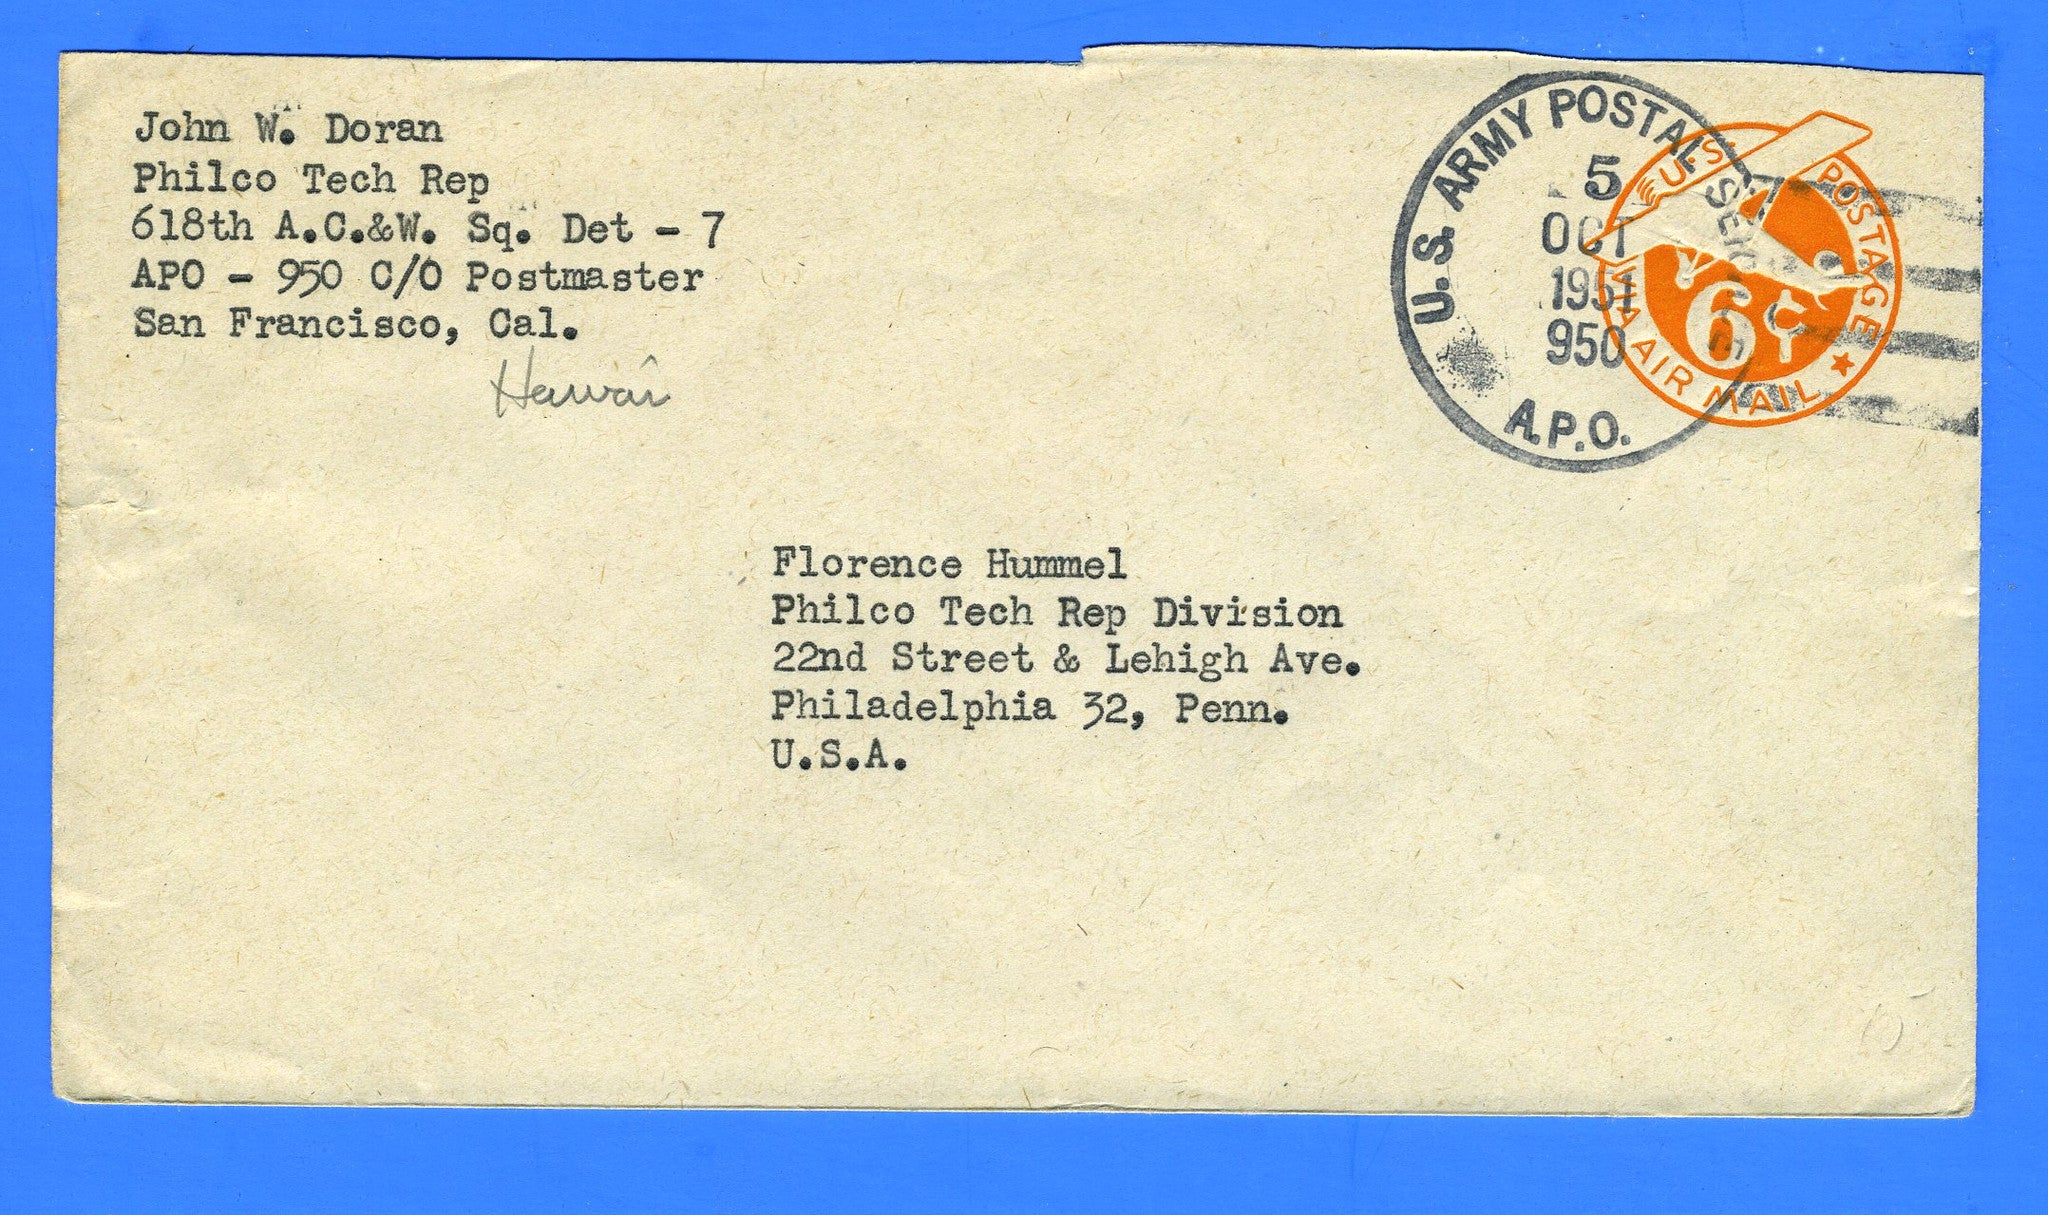 Soldier's Mail APO 950 Fort Armstrong, Hawaii October 5, 1951